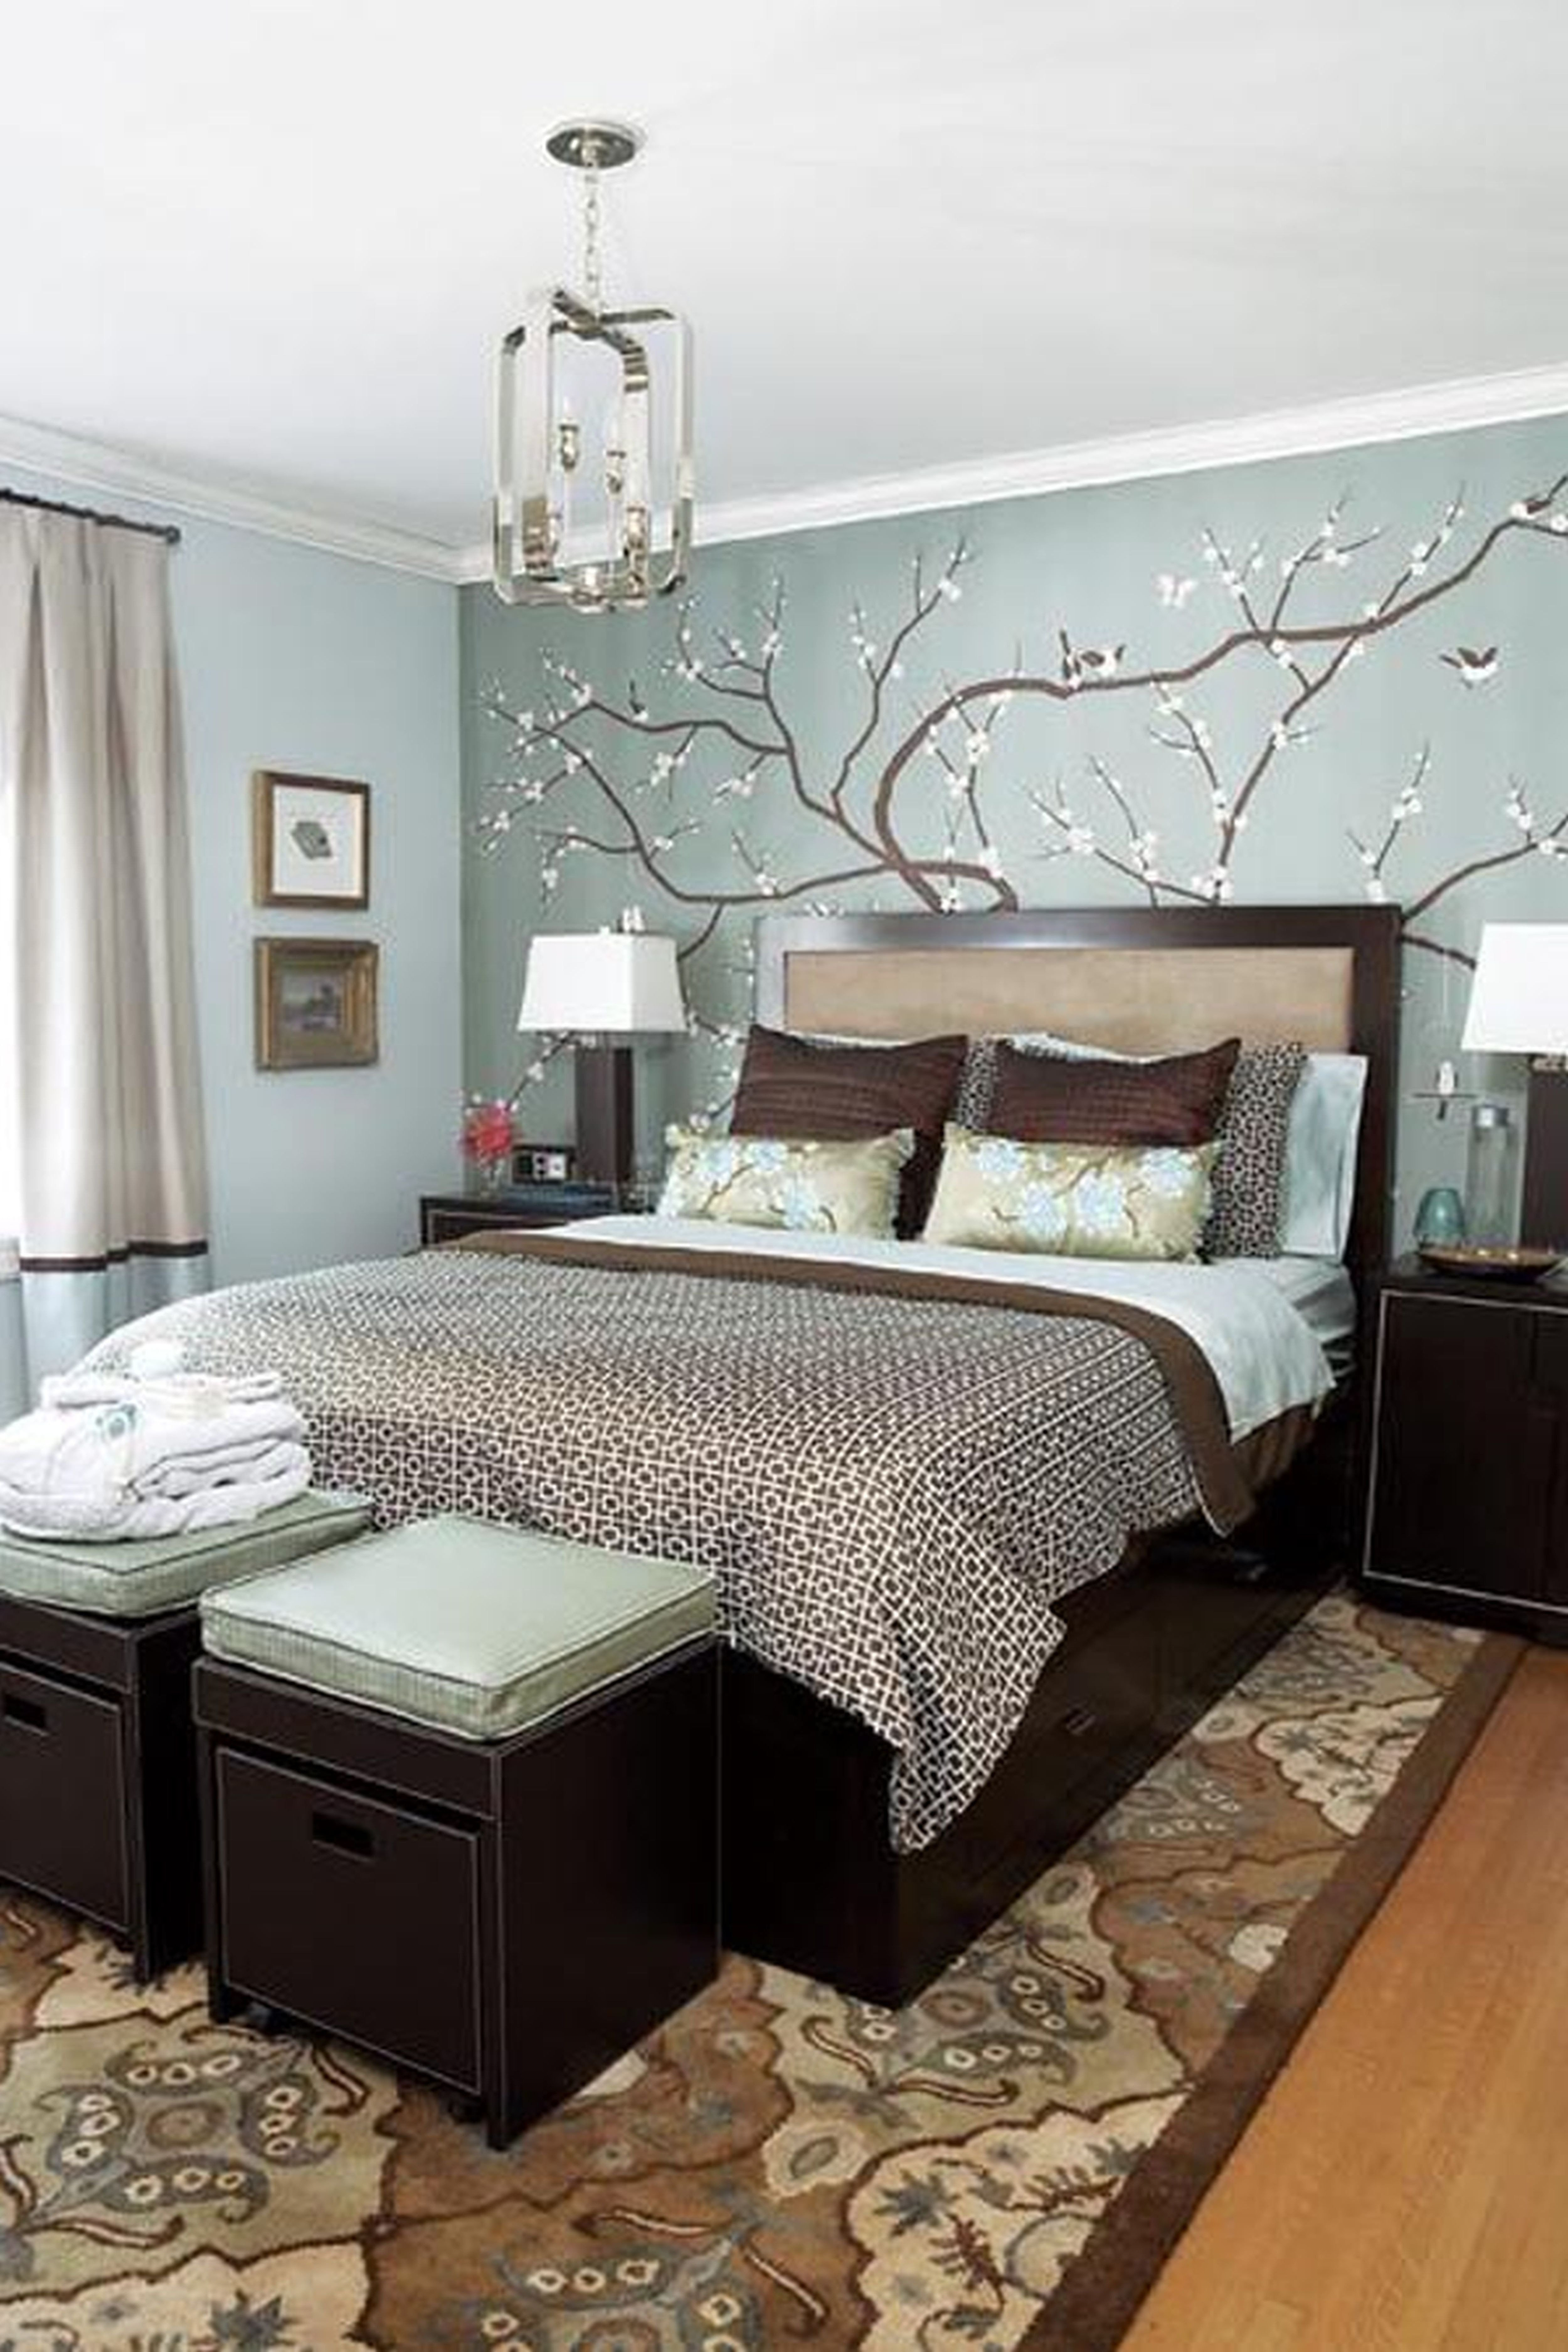 Gray and Brown Bedroom Best Of Everything You Need to Know About Home Improvement